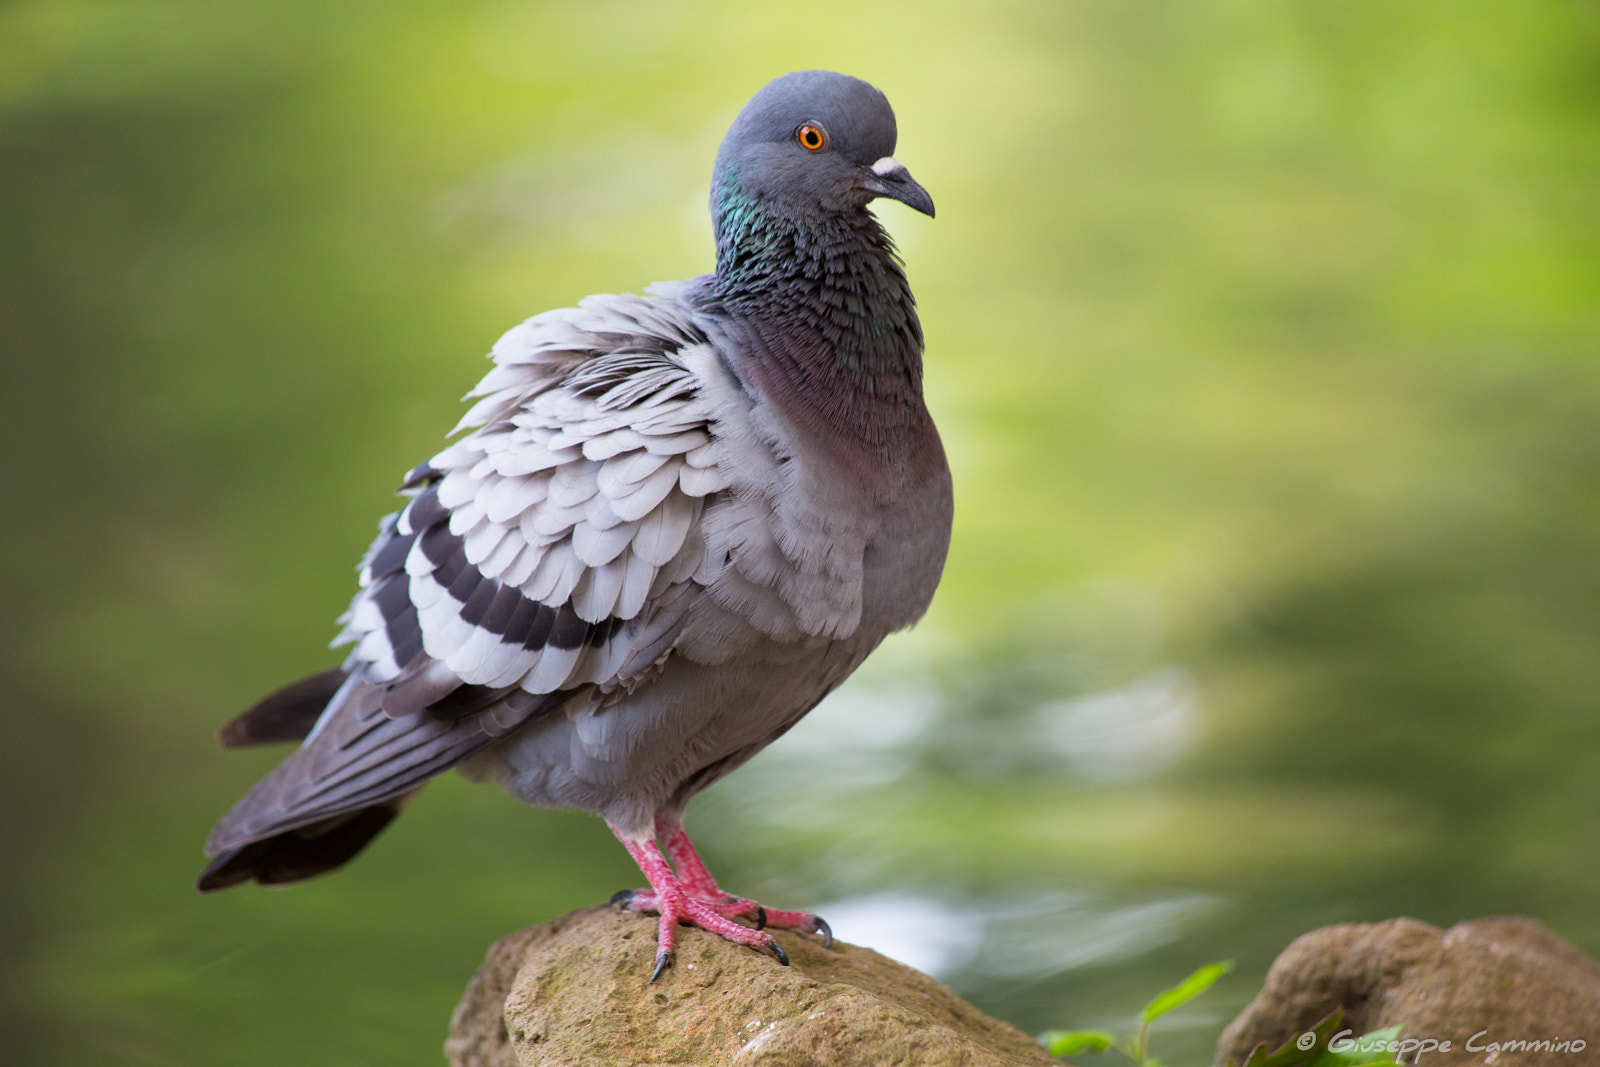 Photograph Villa Borghese - Pigeon by Giuseppe Cammino on 500px